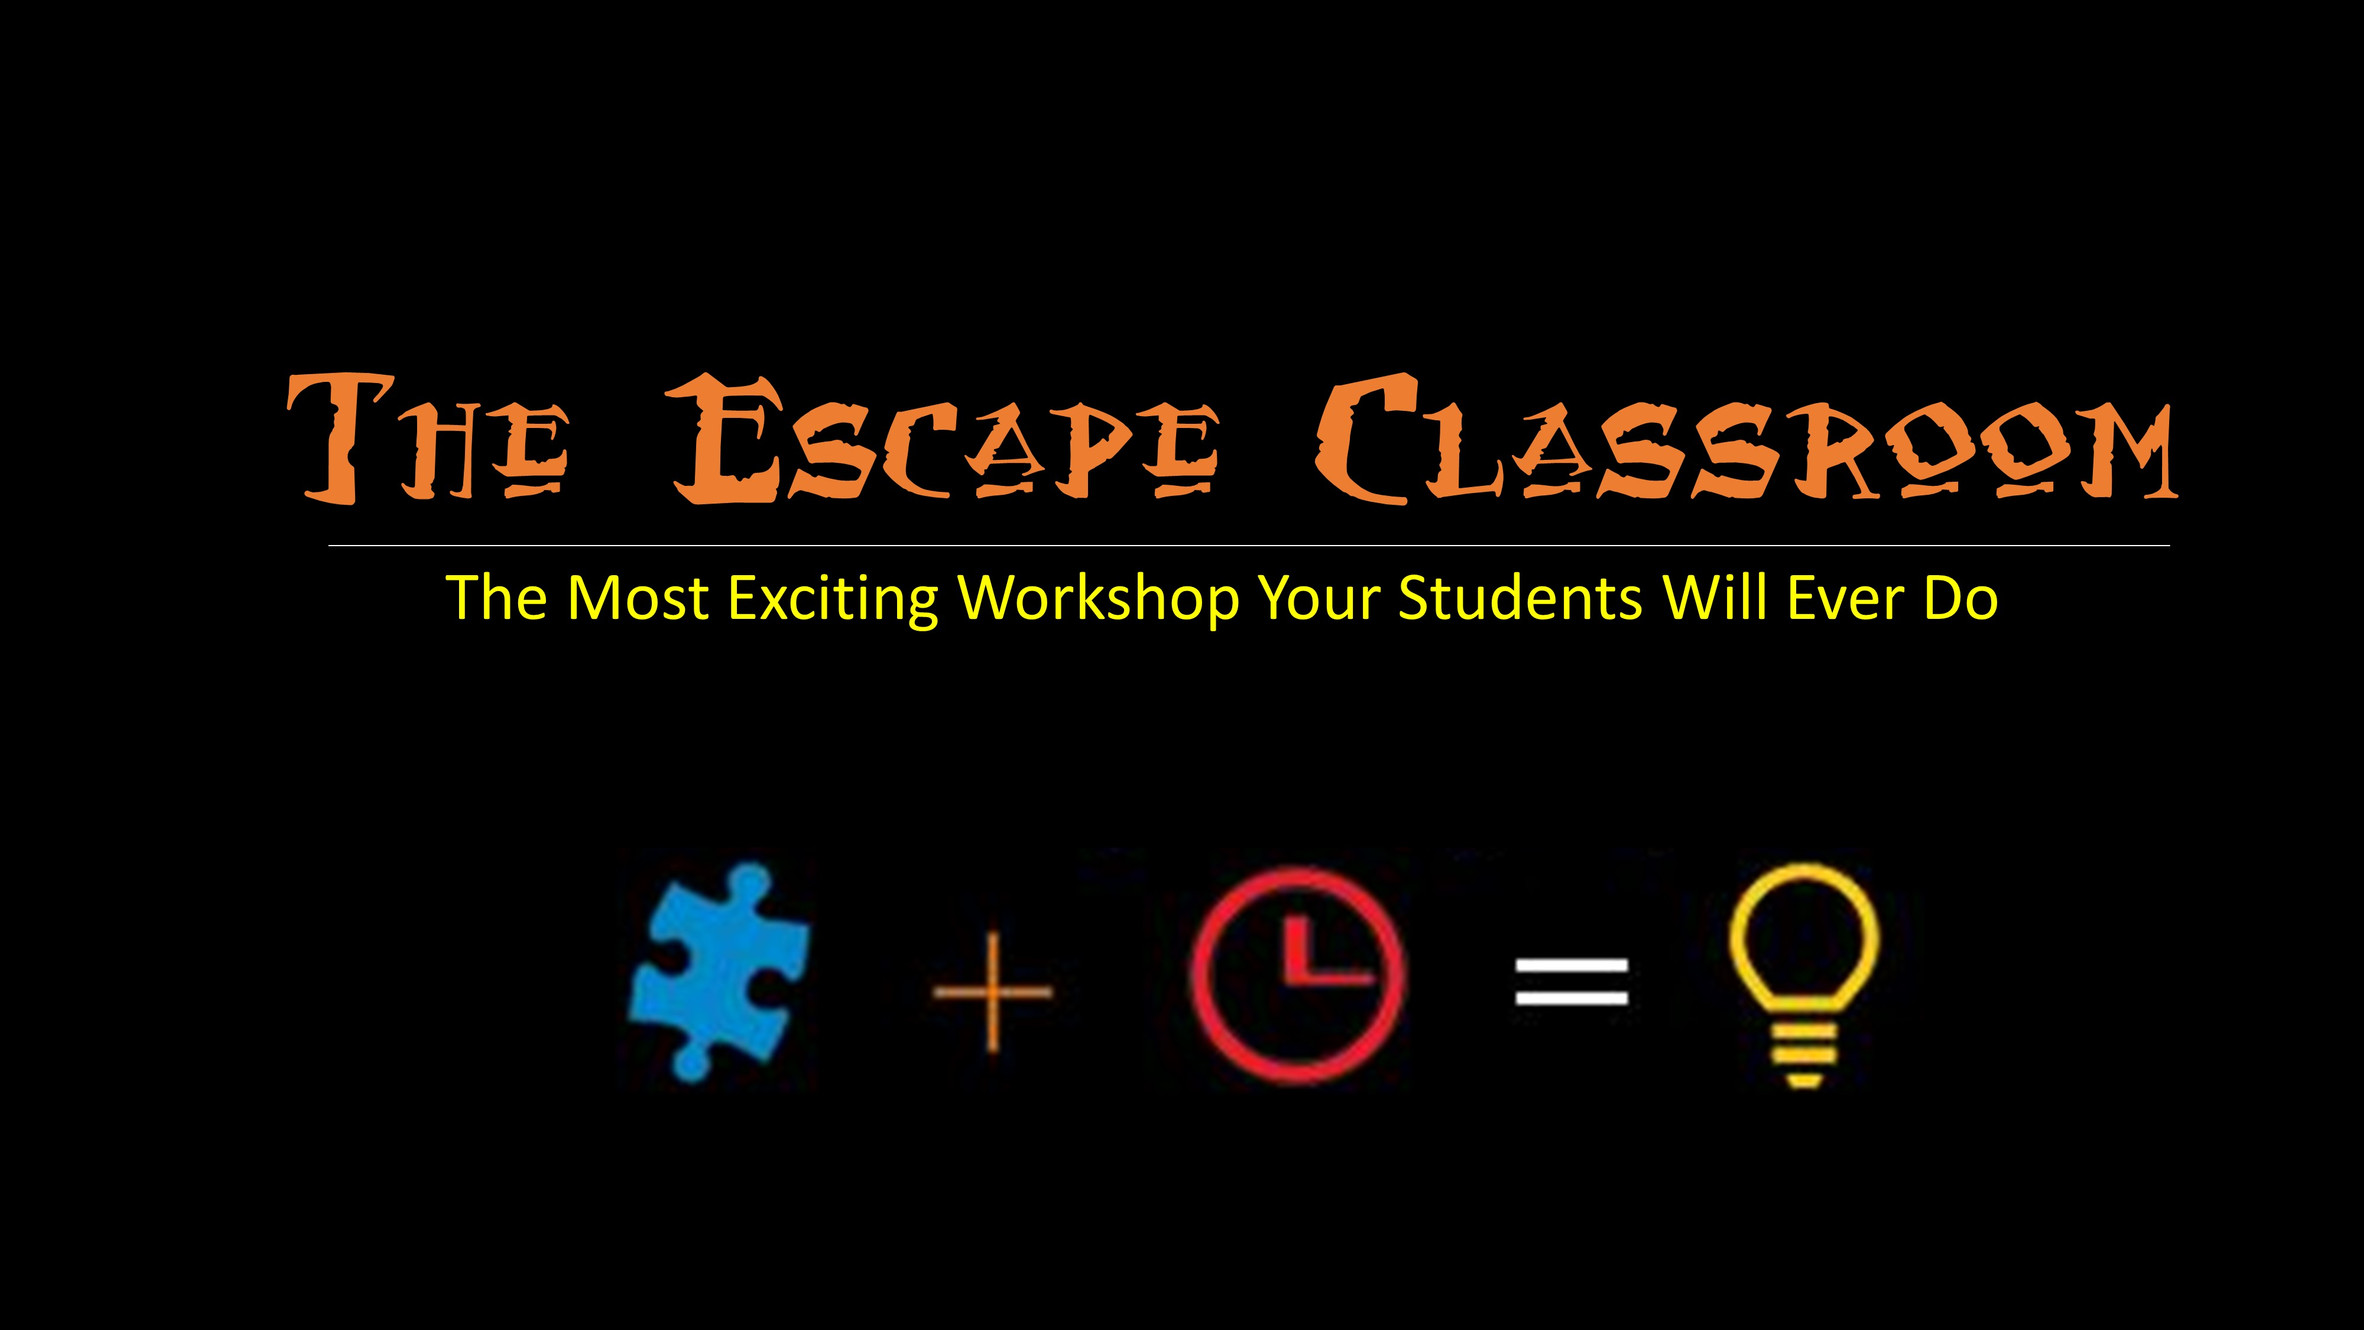 image about Escape Room Signs Printable identify The Escape Clroom Escape Rooms For The Clroom